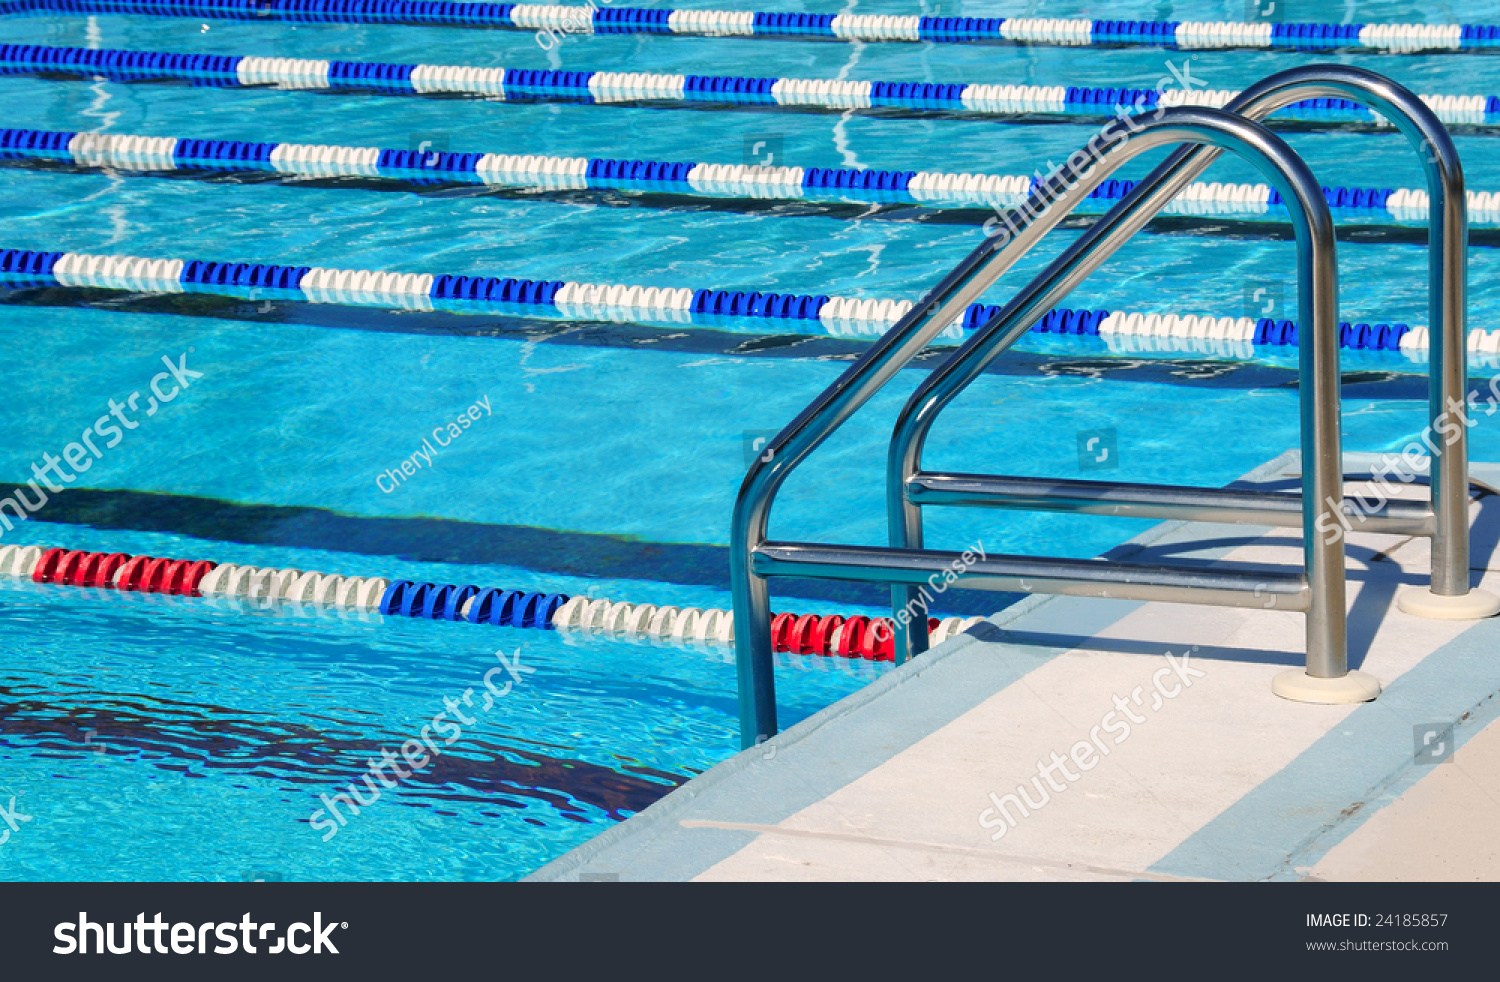 Community Swimming Pool With Racing Lanes Stock Photo 24185857 Shutterstock